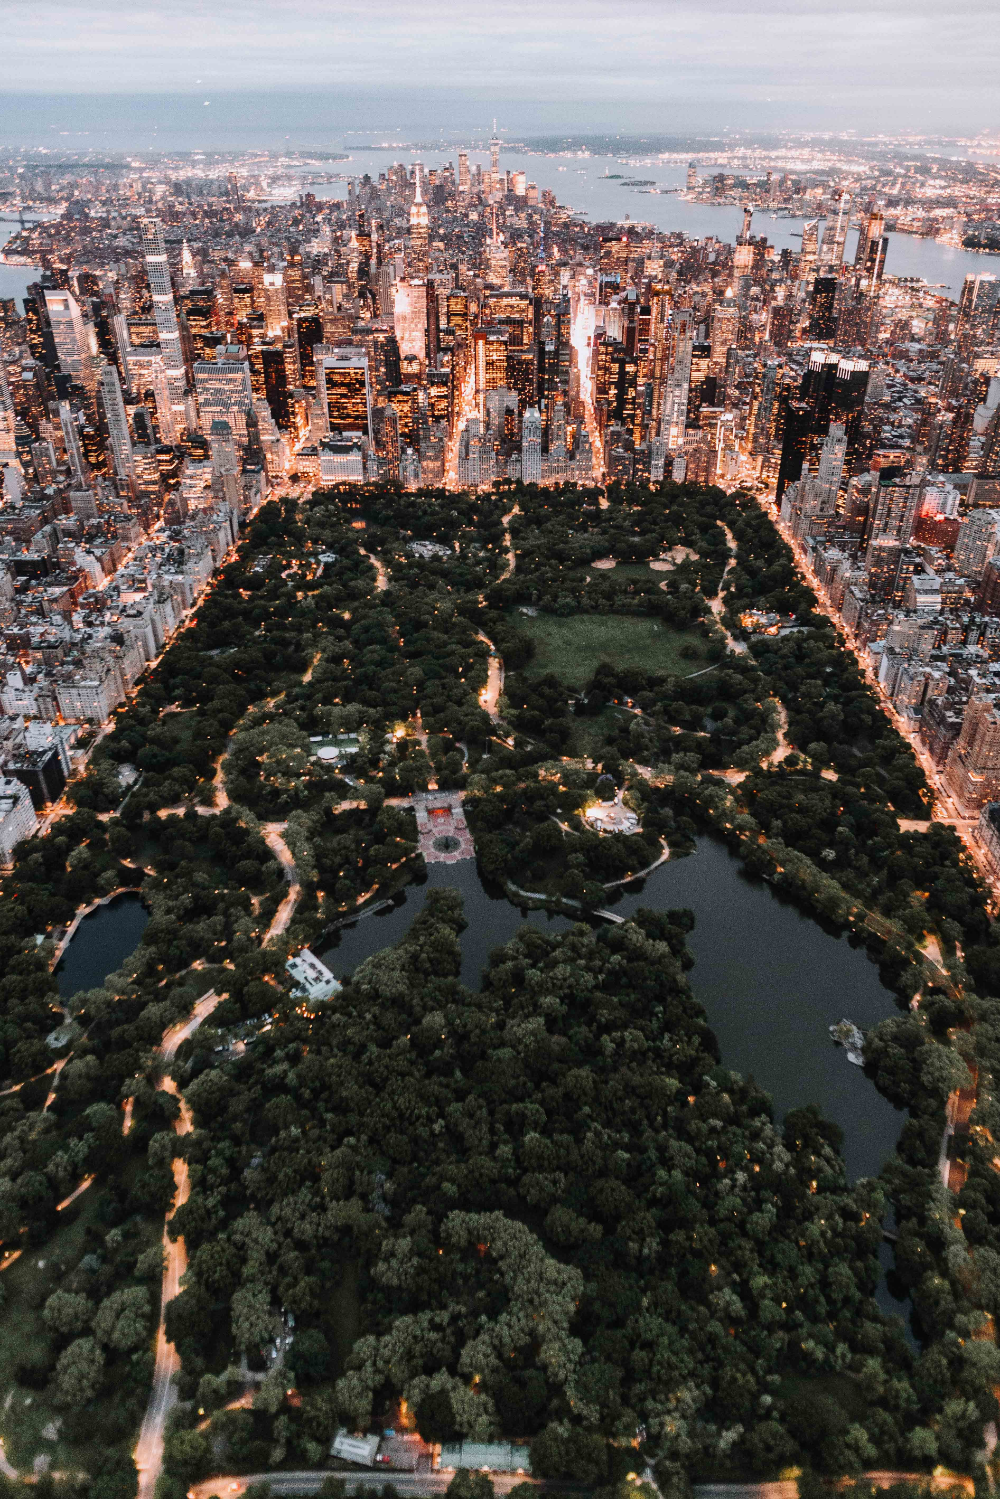 5 Best New York City Attractions - Top5  #travel #beautiful #wanderlust #travelphotography #photography #nature #love #photooftheday #wanderlust #trip #travelblogger